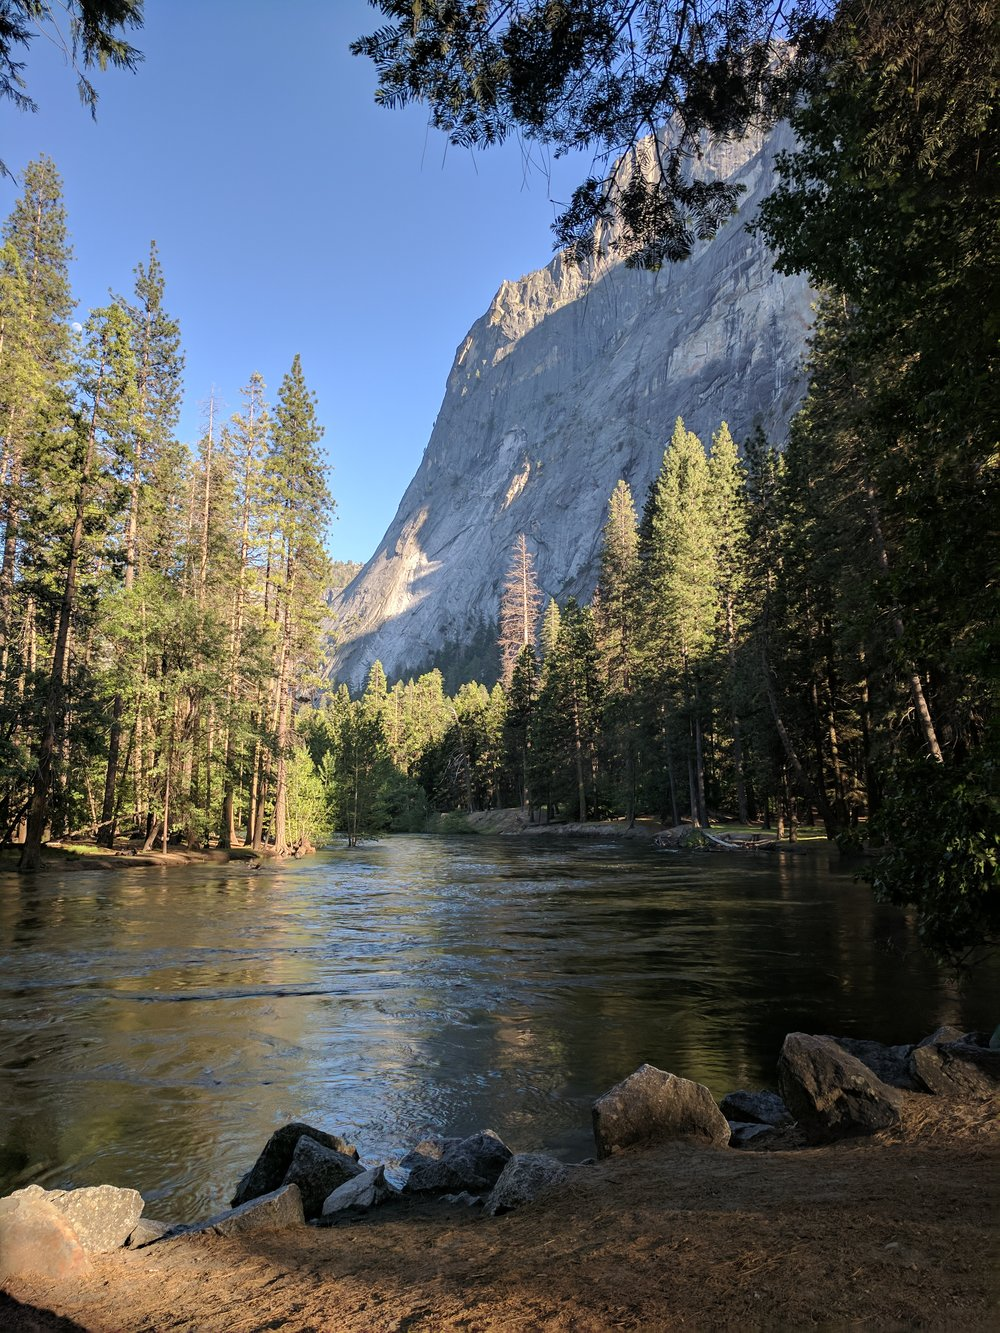 Merced River at Housekeeping Camp. 2017  Our campsite